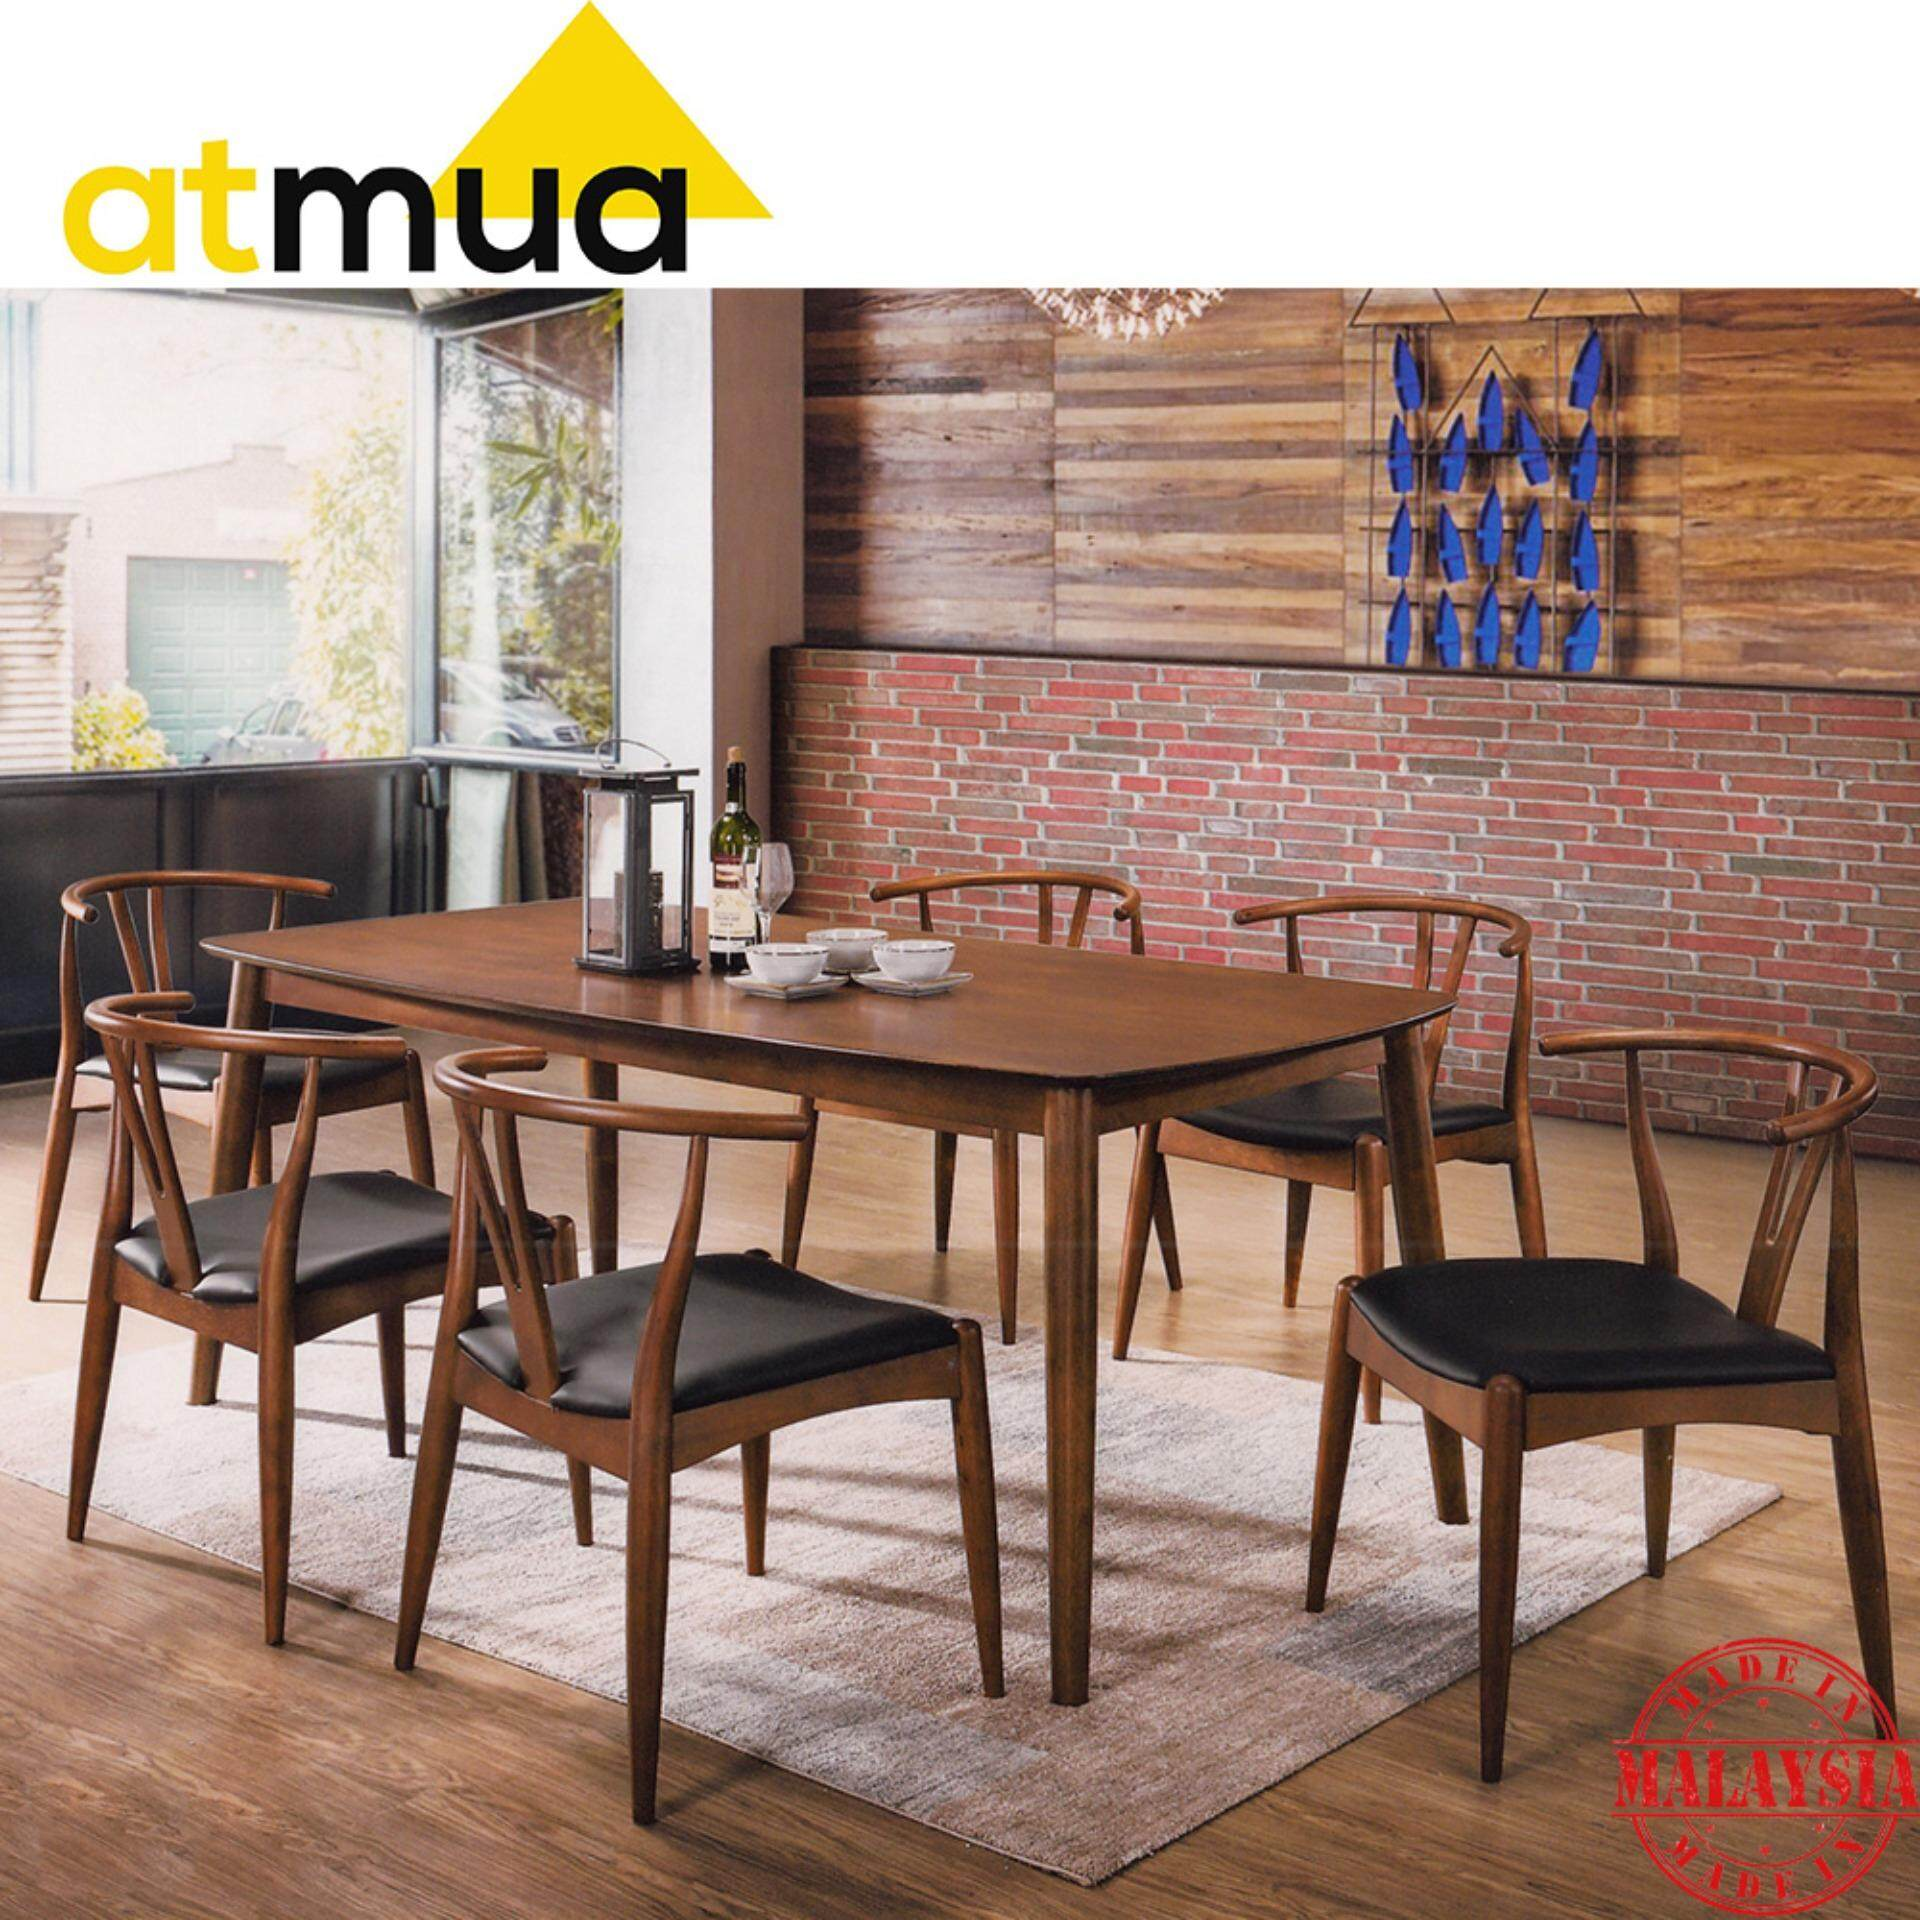 Atmua Coal Dining Set (1 6 Feet Table + 6 Chairs) (Modern Style) [Full Solid Rubber Wood]